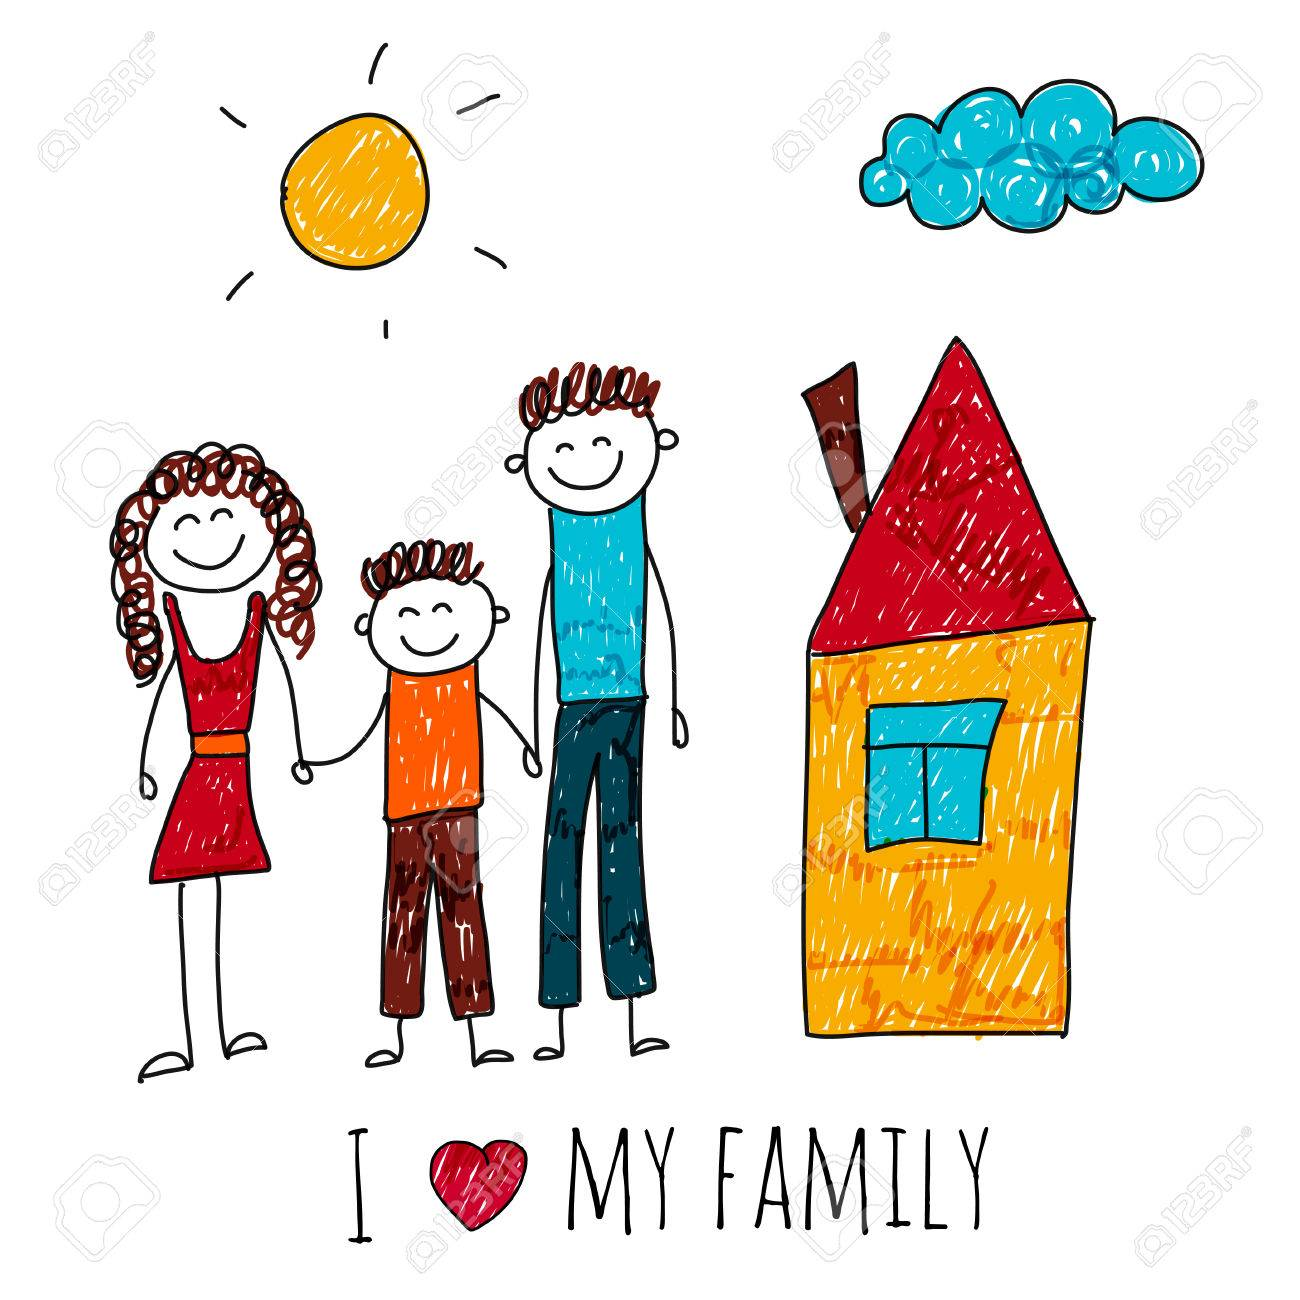 1300x1300 Image Of Happy Family With House. Kids Drawing I Love My Family